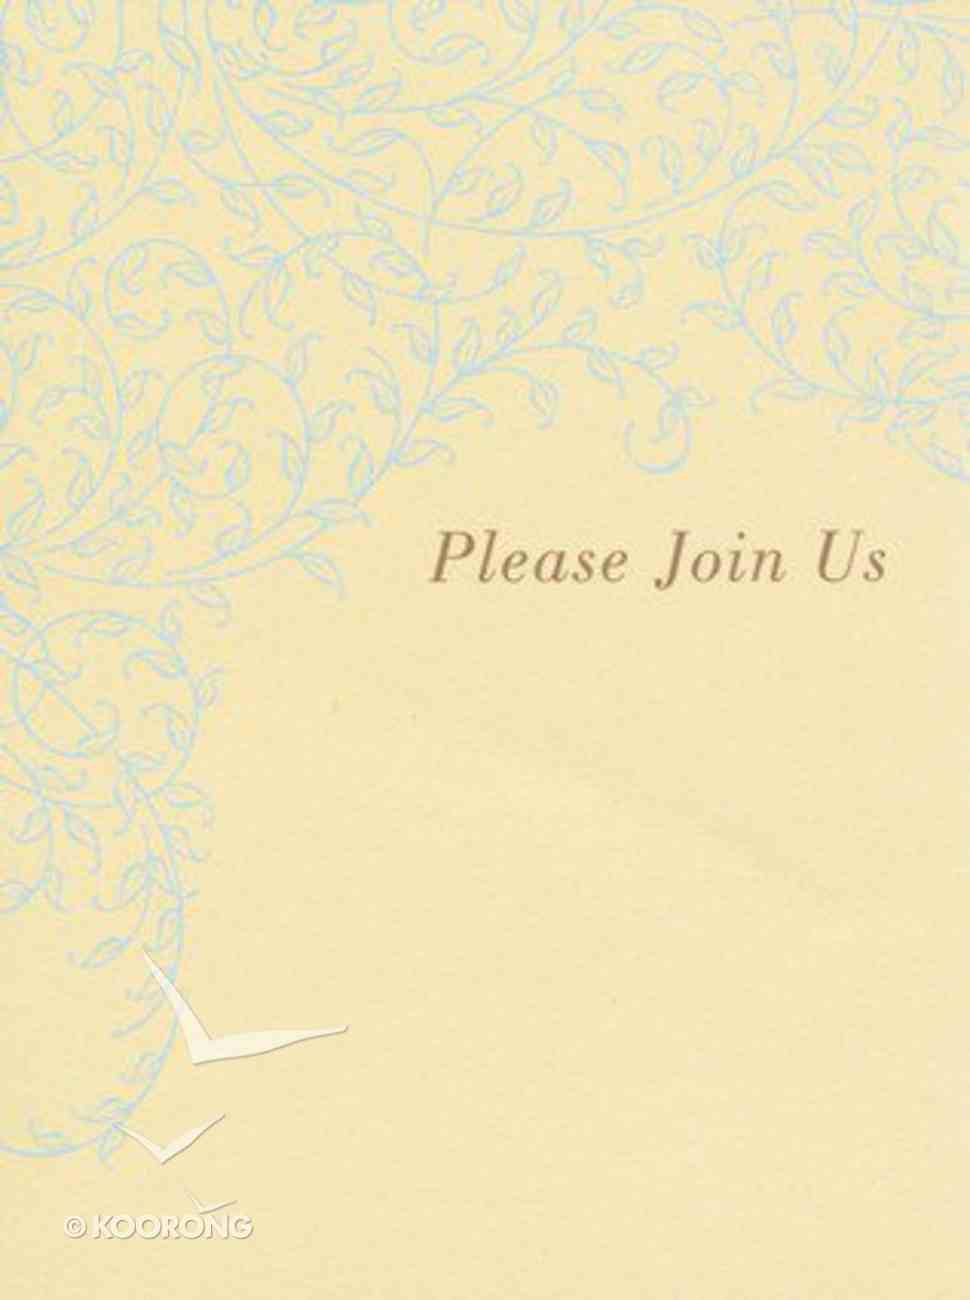 Boxed Cards: Invitation, Please Join Us Box